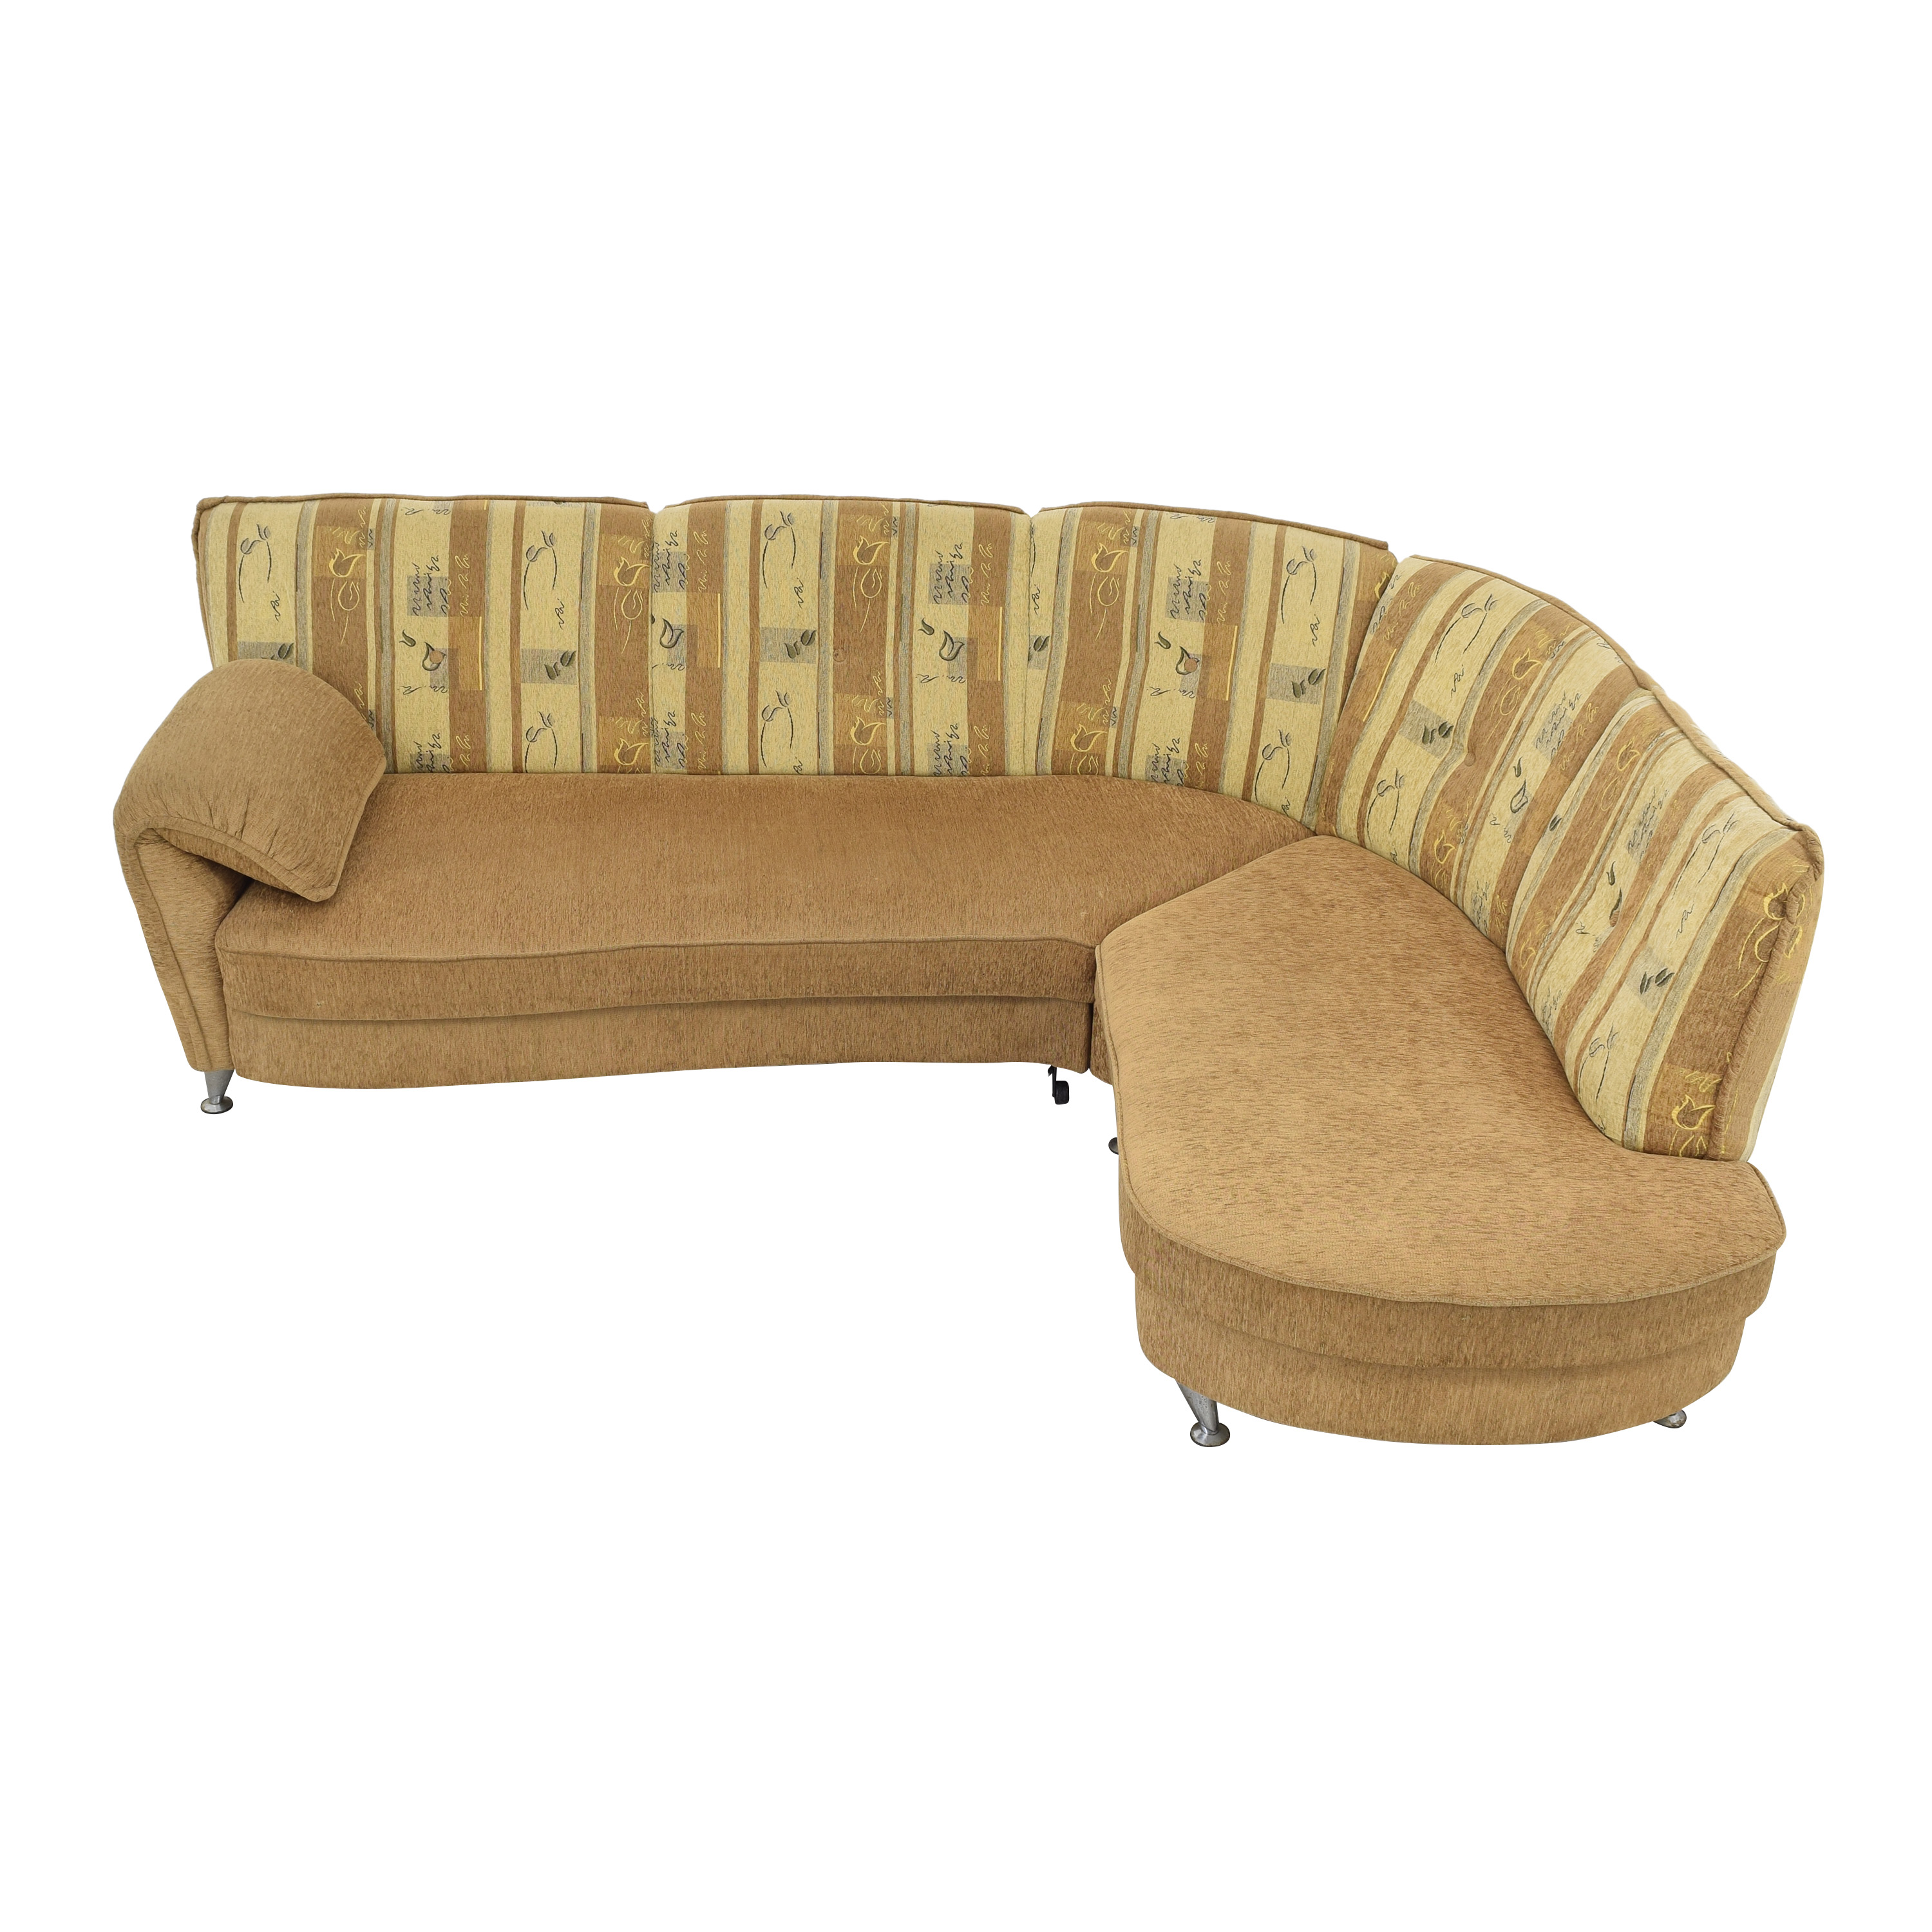 Curved Sectional Sofa with Foldout Bed nj